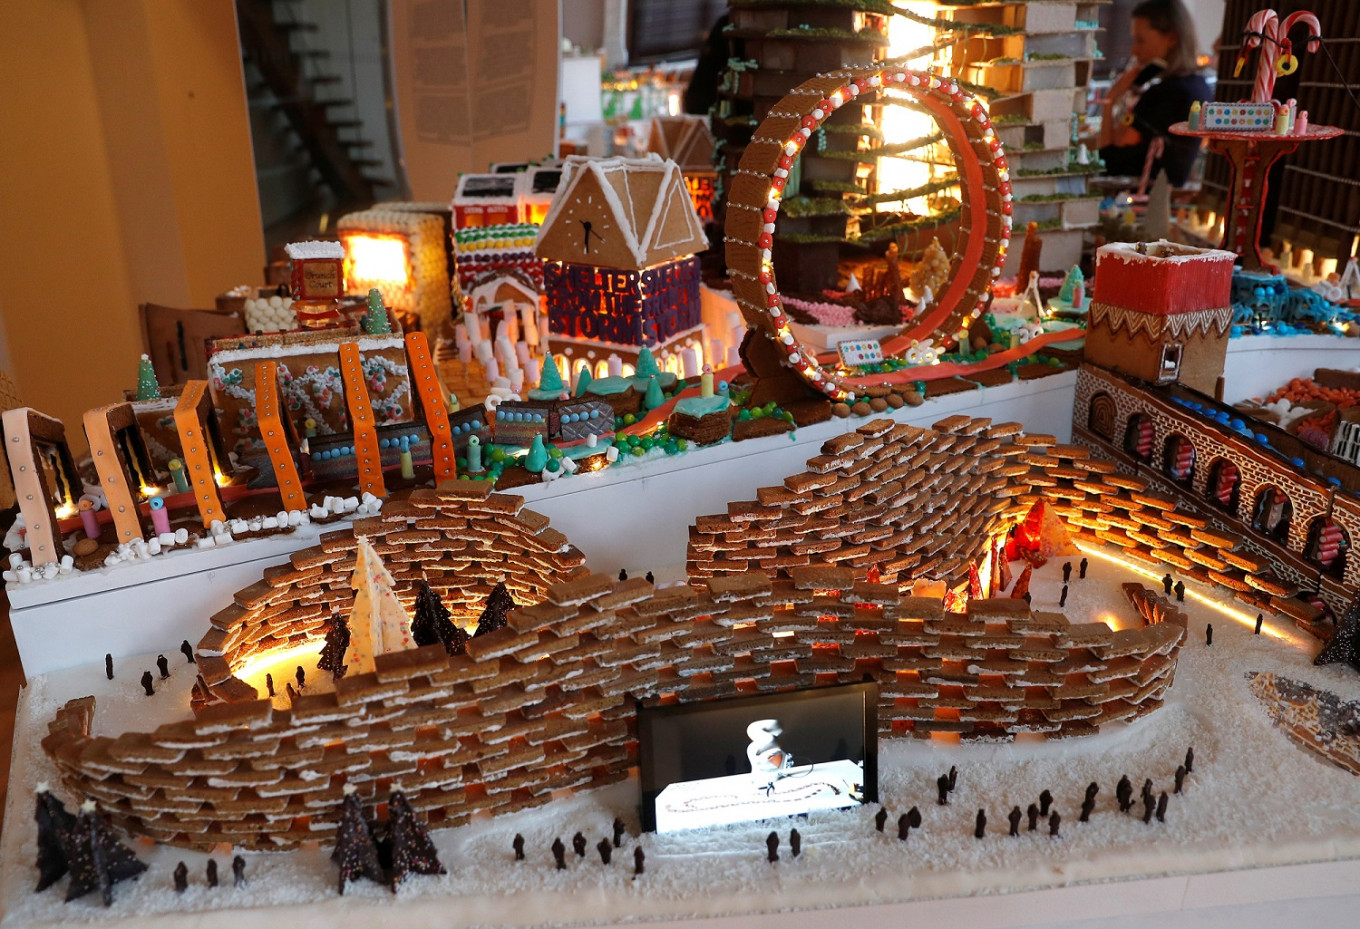 Architects build gingerbread city to whet appetite for design